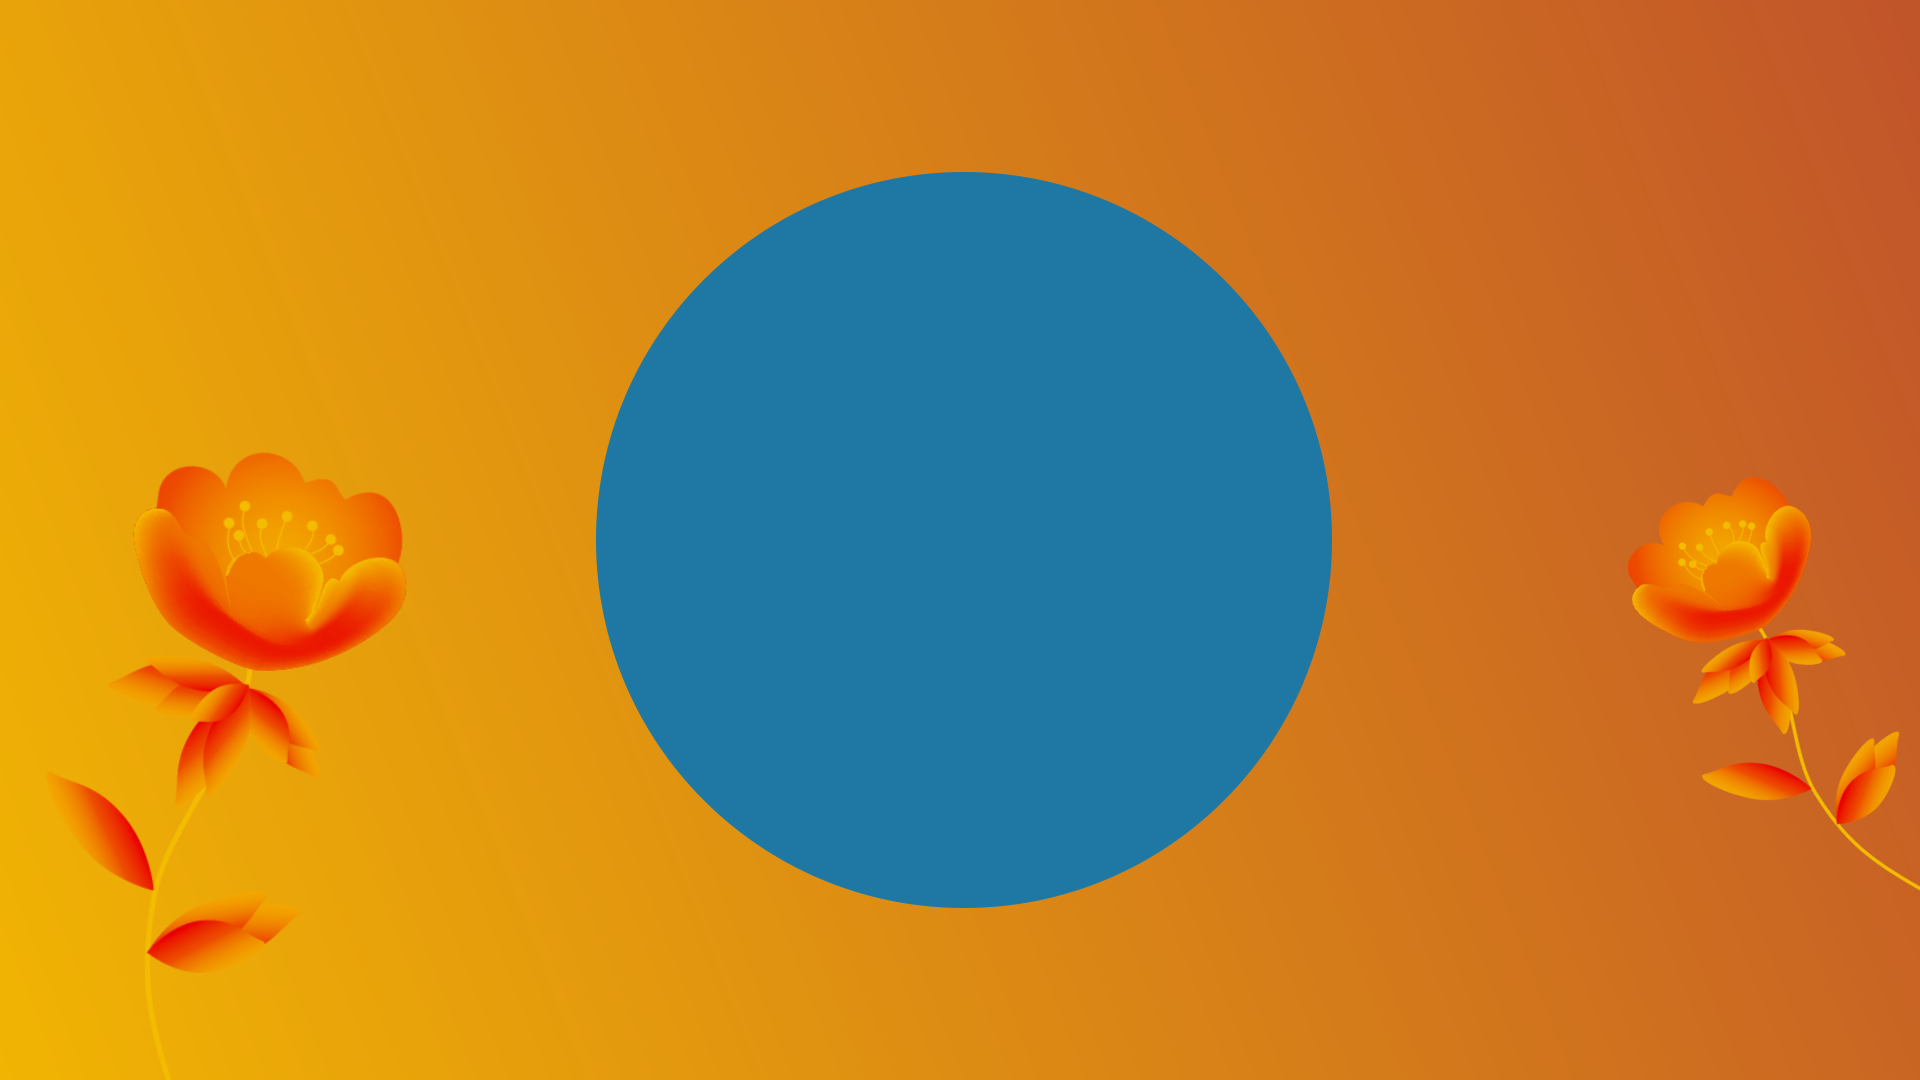 Website development, inner circle of digital marketing, turquoise circle on yellow background with sprouting orange flowers.